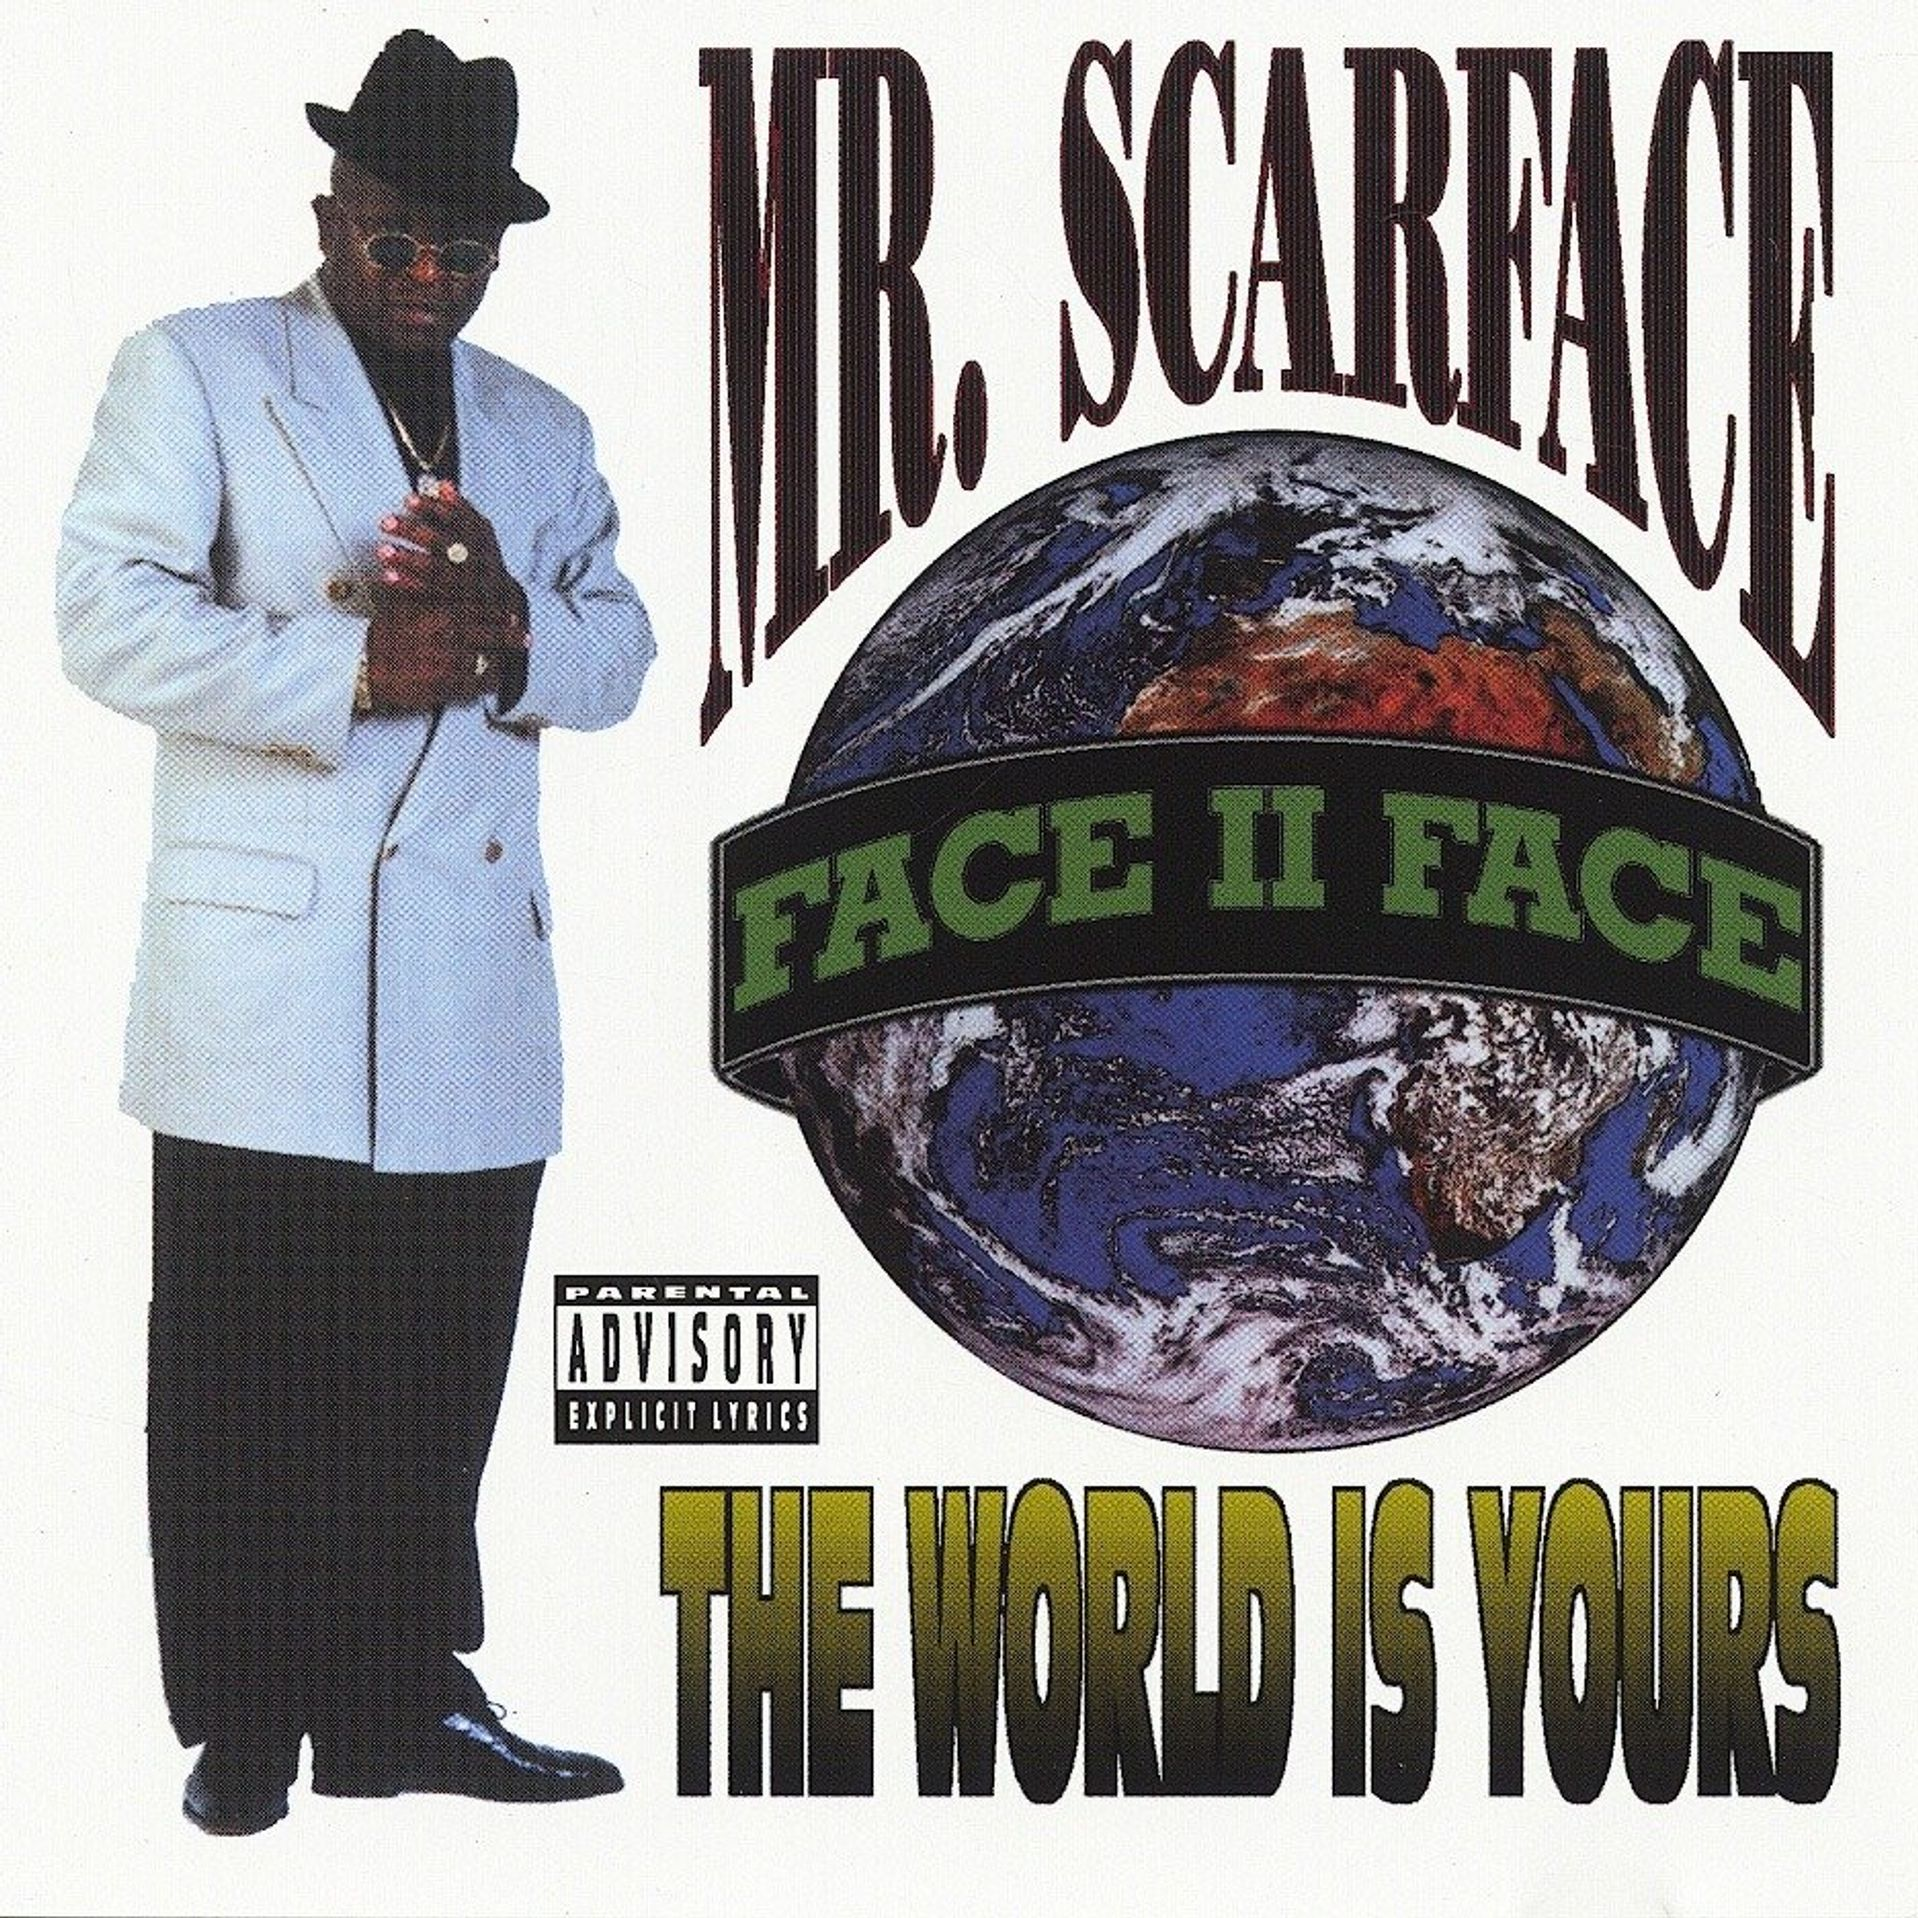 Album Title: The World is Yours by: Scarface